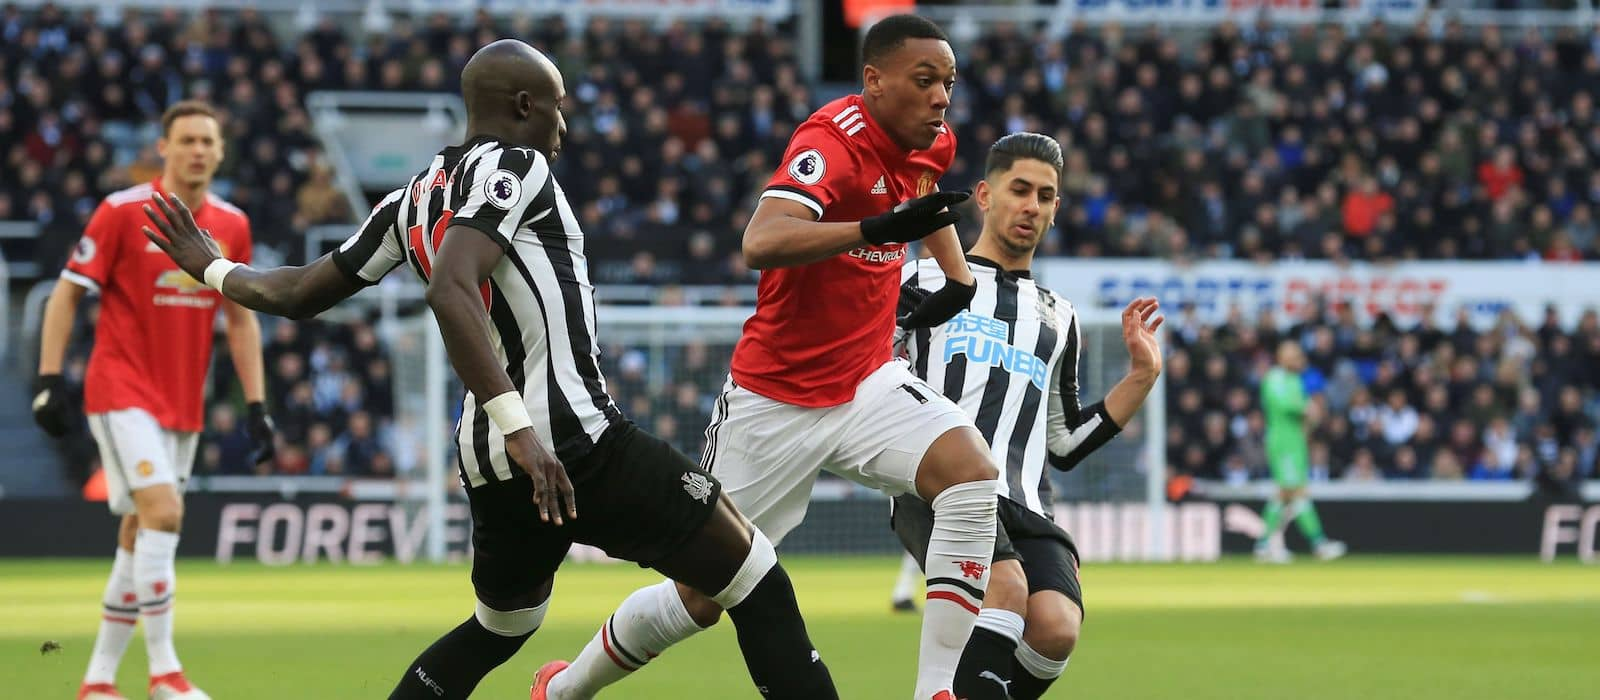 Manchester United fans disappointed by Anthony Martial's performance vs San Jose Earthquakes